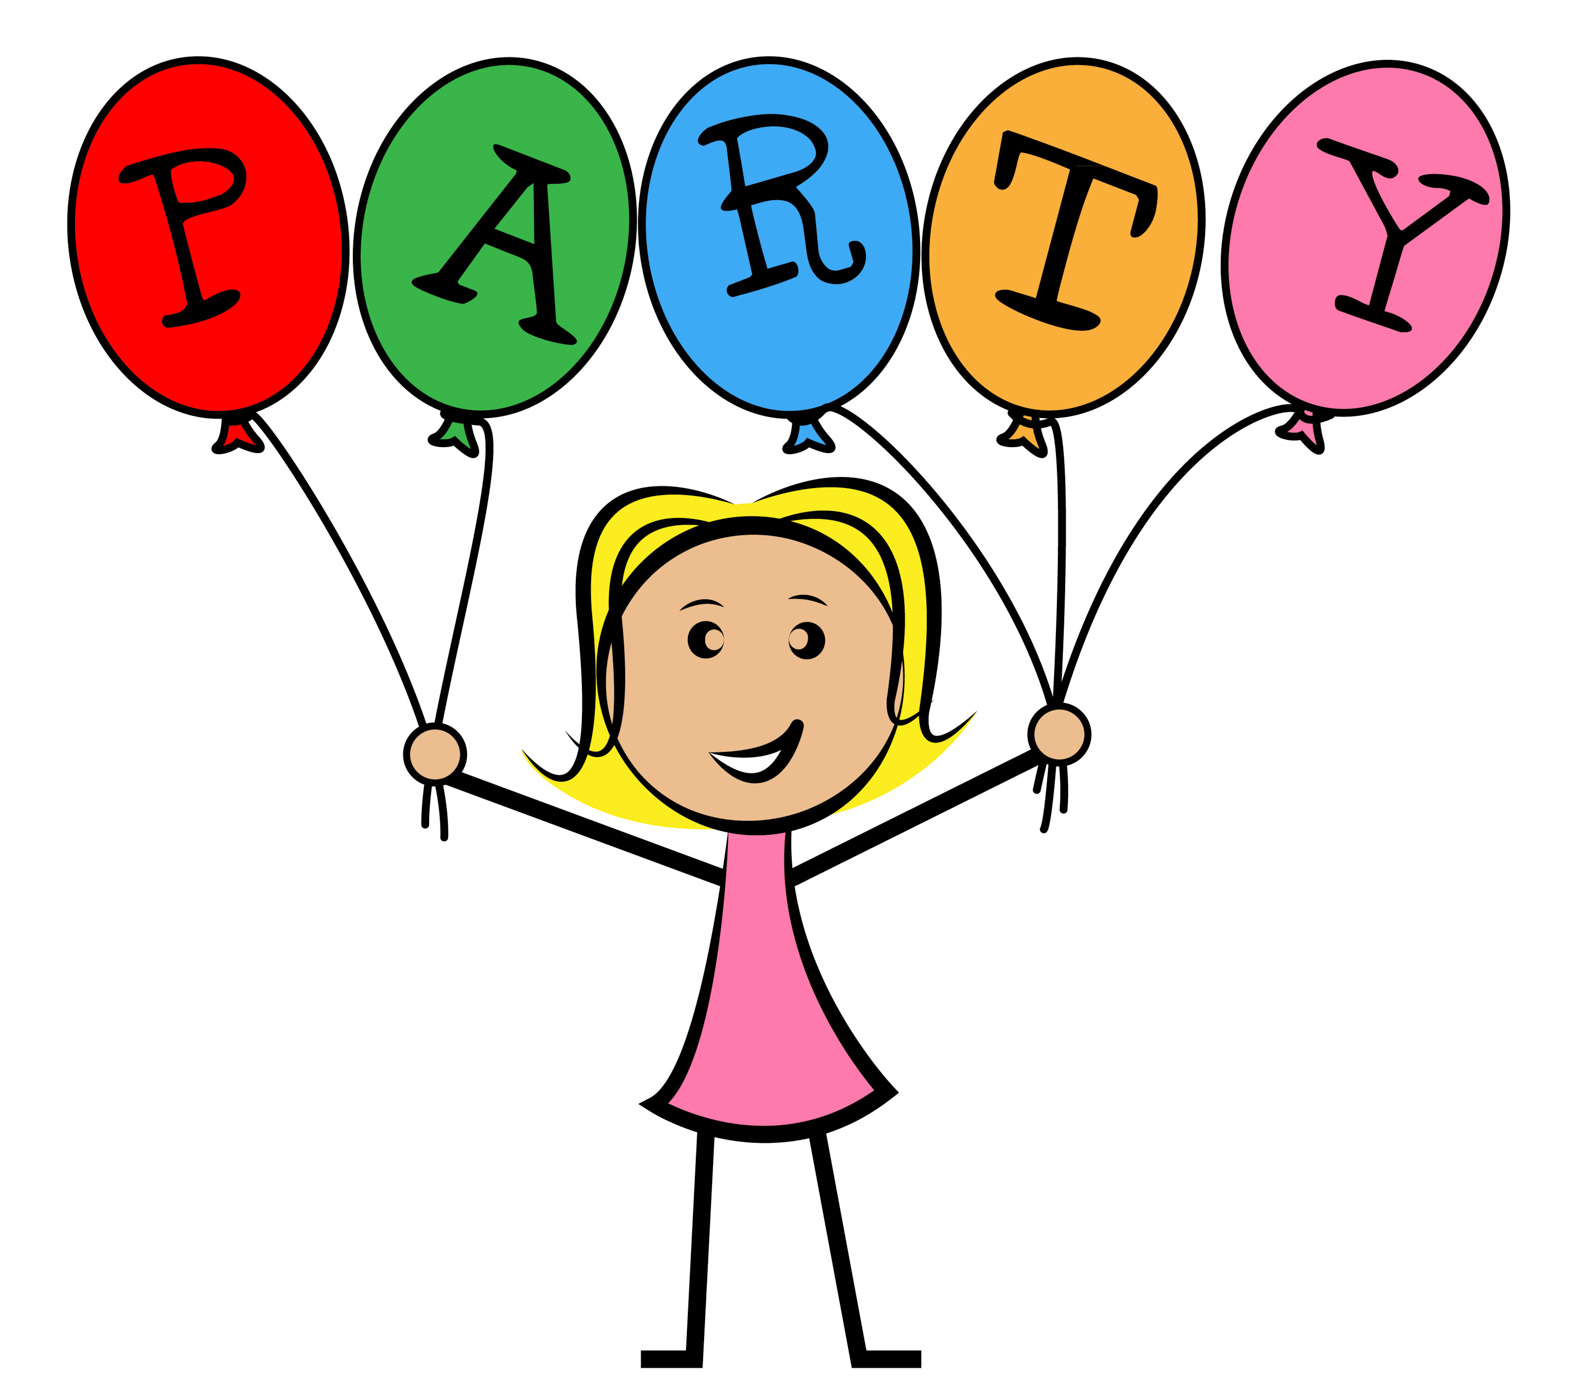 Party balloons represents young woman and kids photo